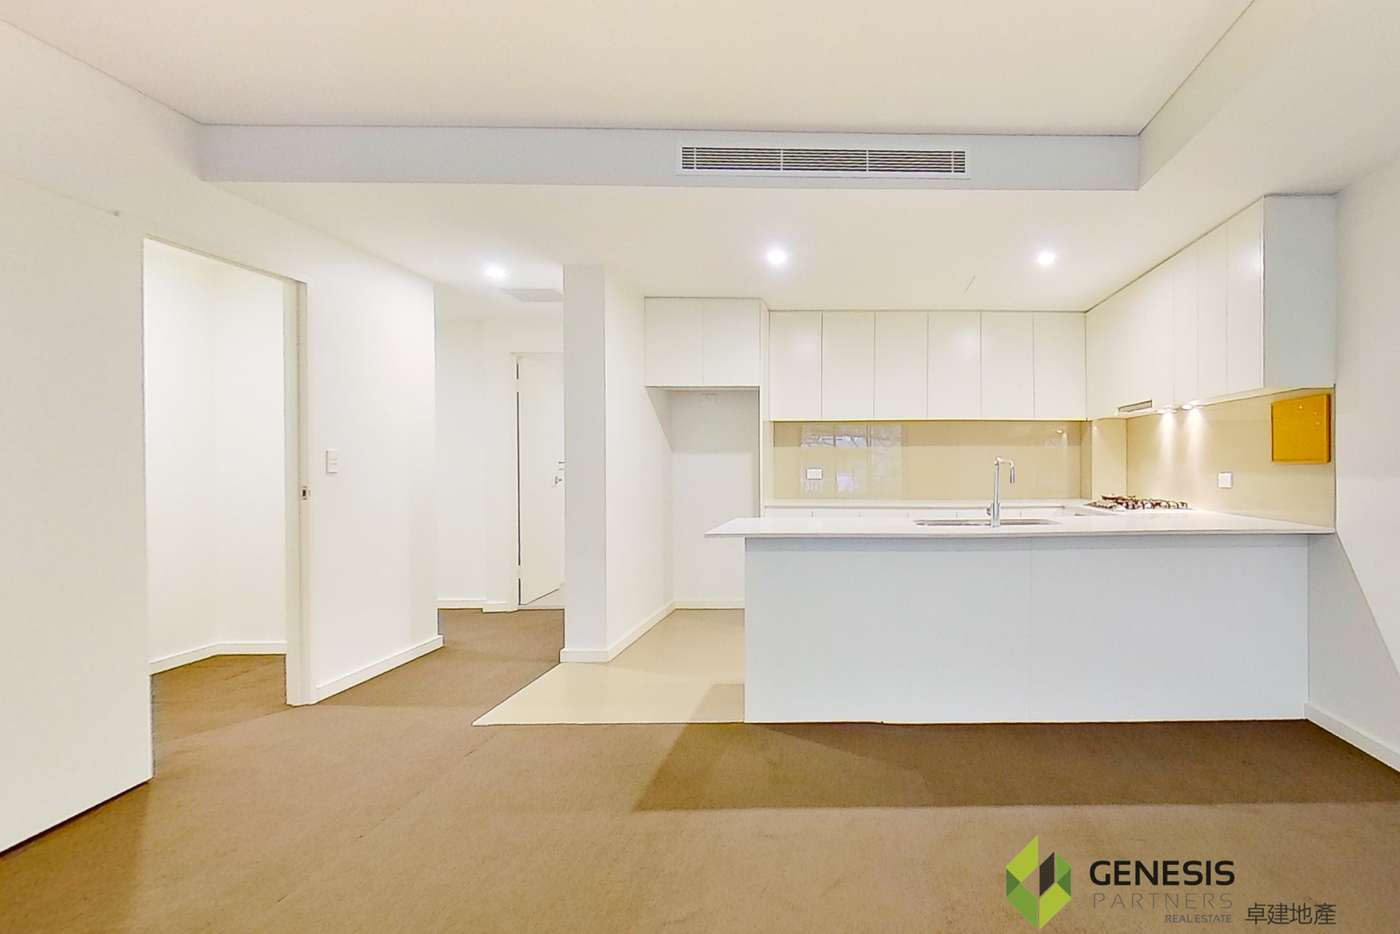 Main view of Homely apartment listing, 35/217-221 Carlingford Road, Carlingford NSW 2118